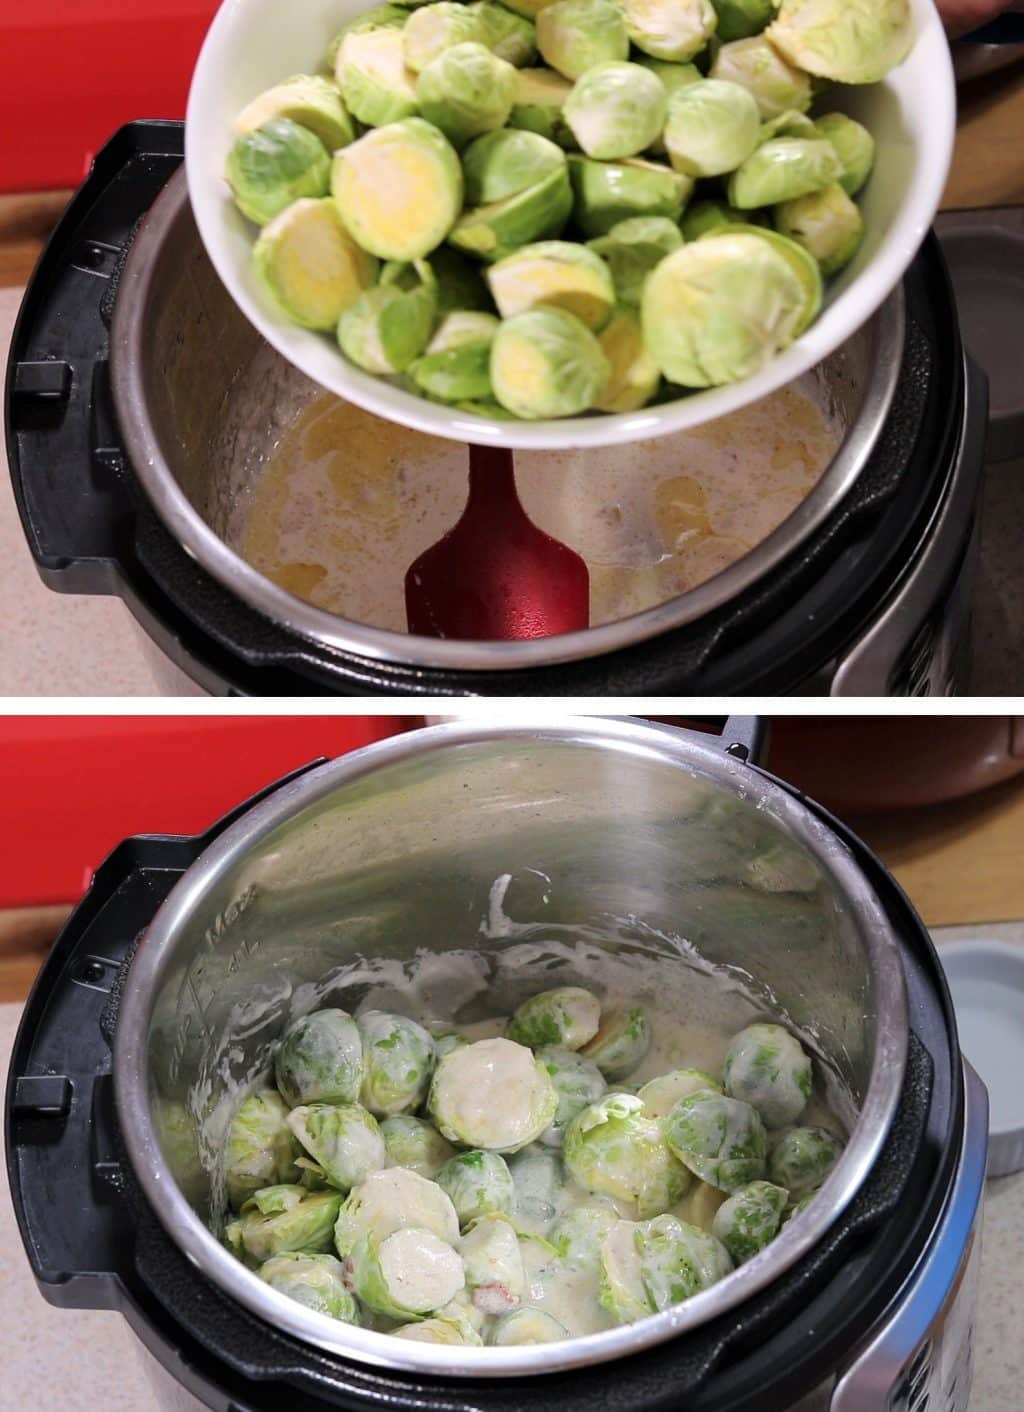 Brussels Sprouts Cook in Cream Sauce